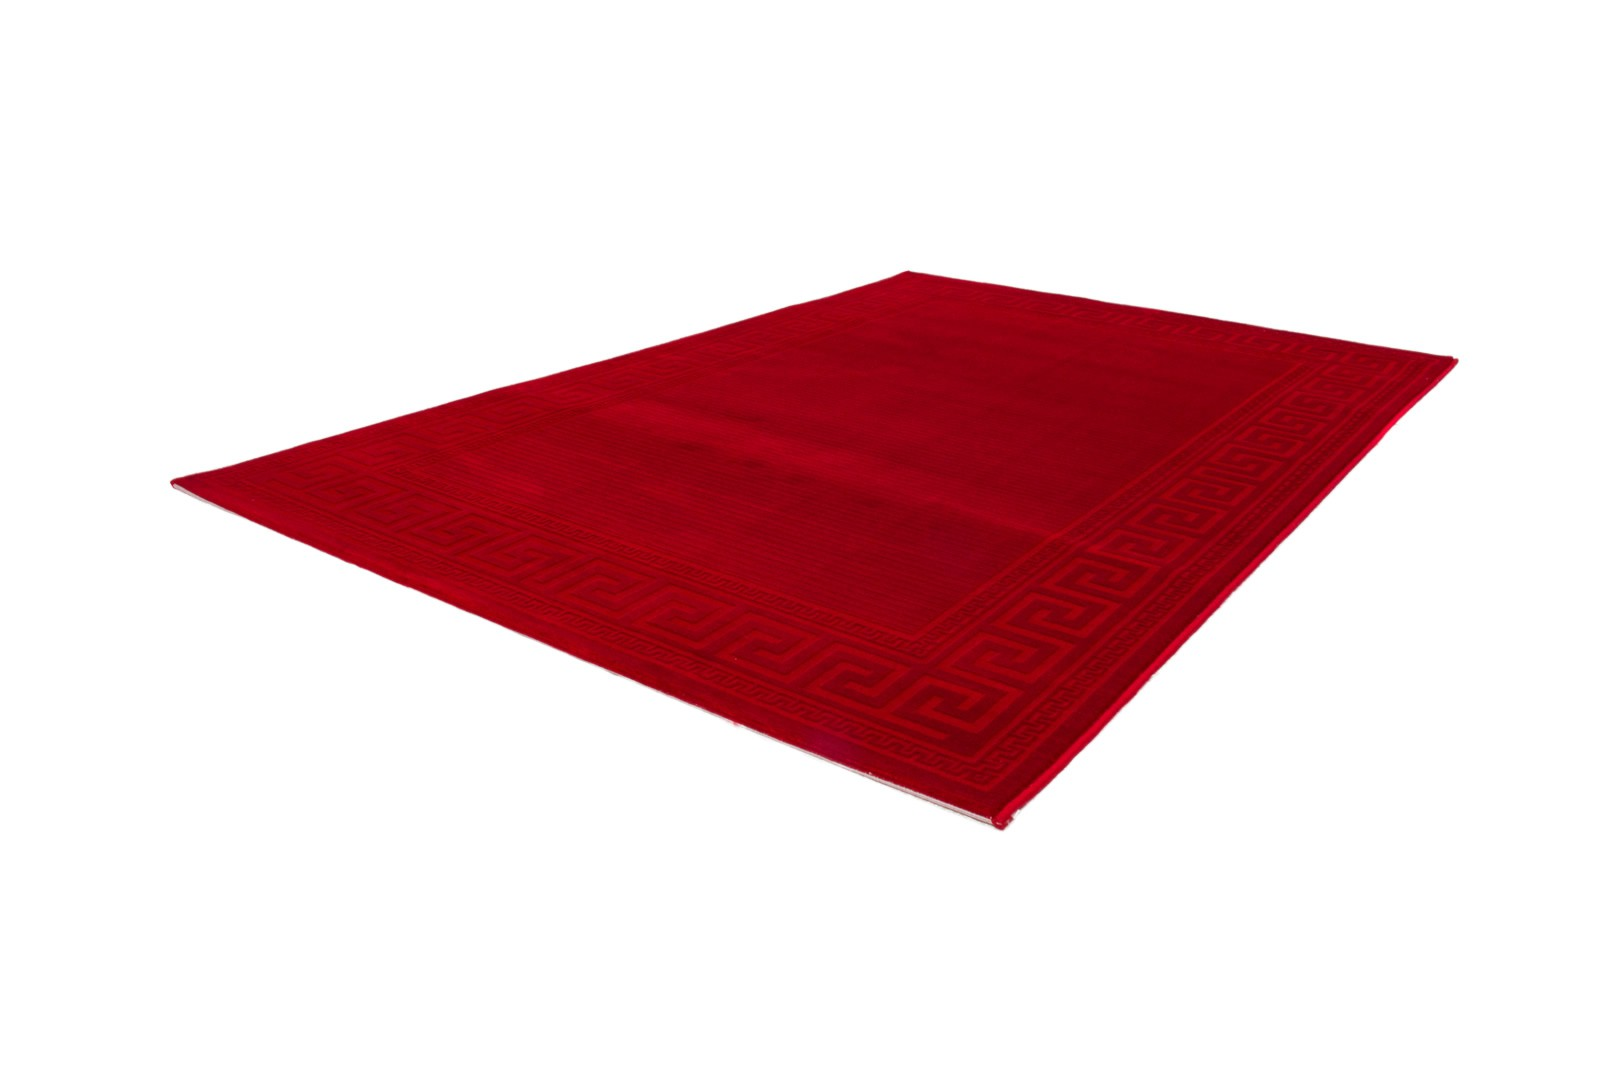 Tapis contemporain pour salon rouge Lydia